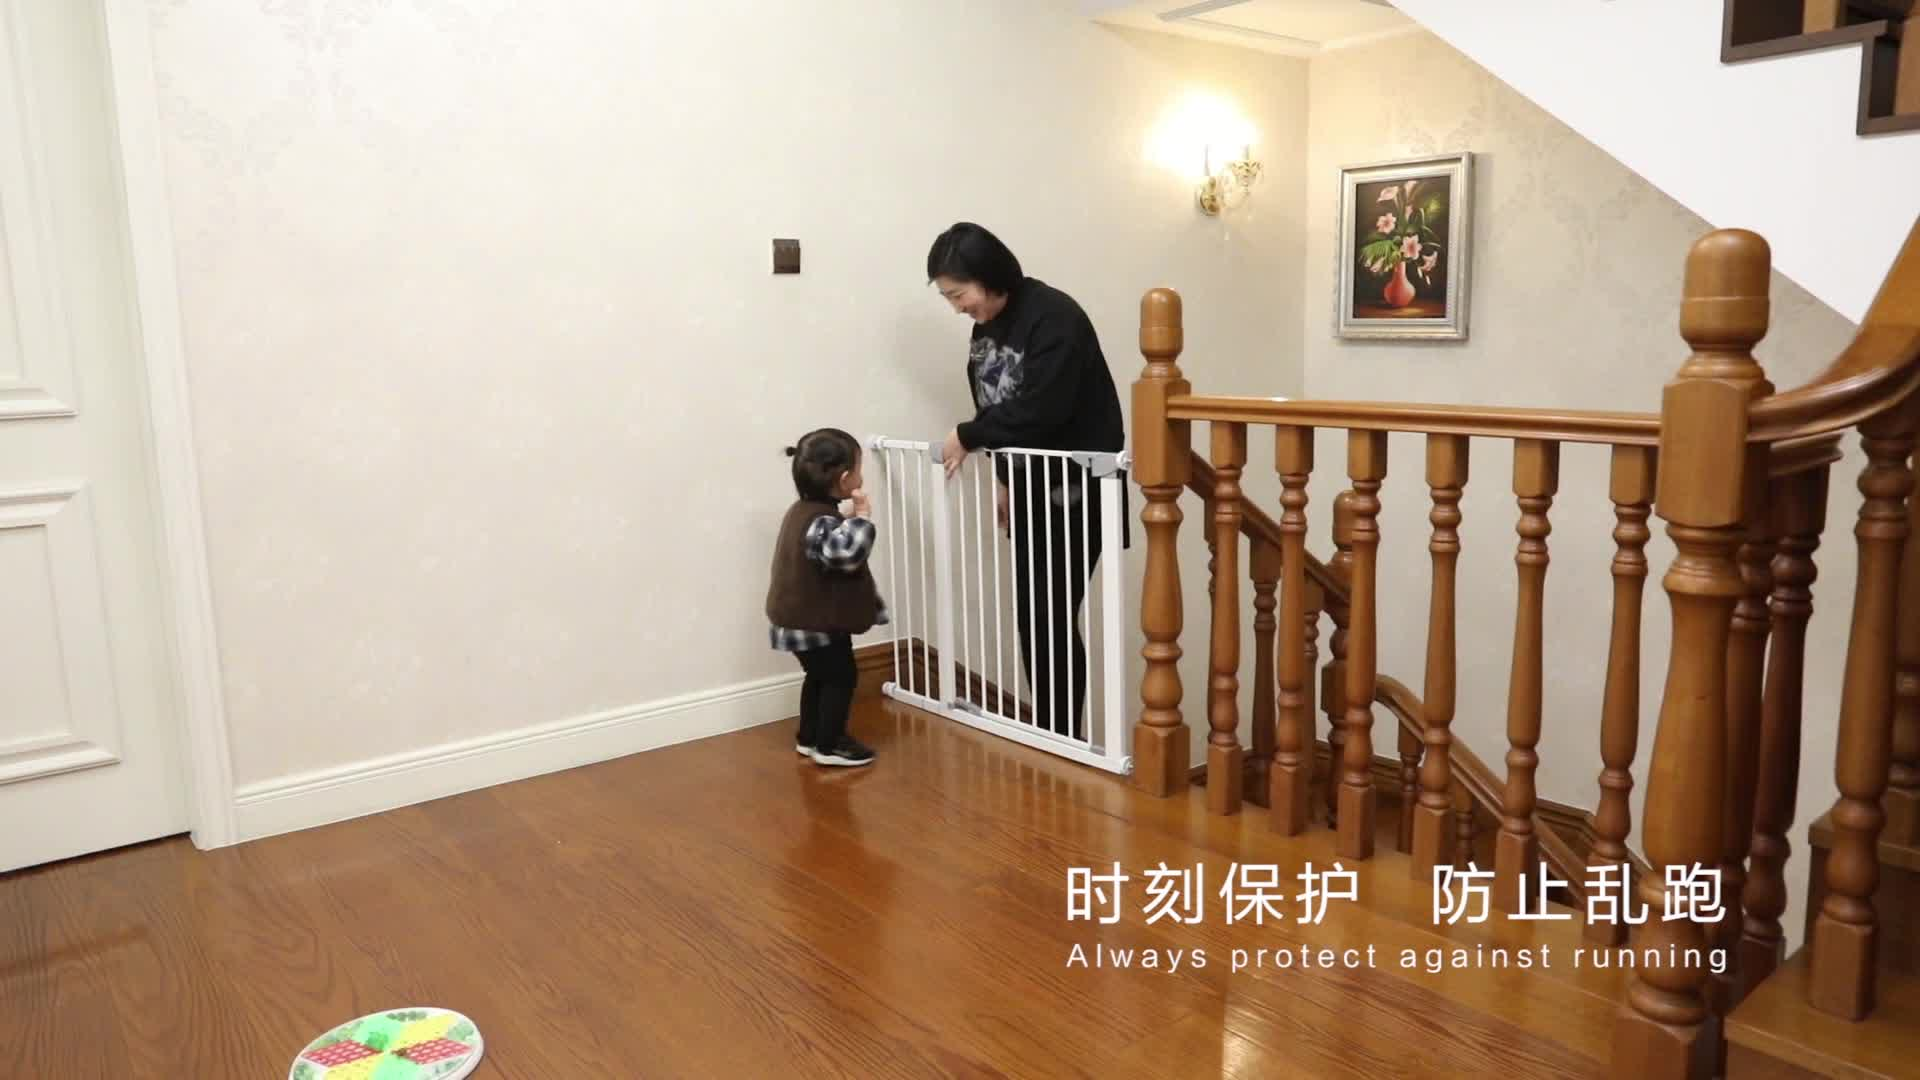 Pressure-mounted design for pet baby safety gate prevents wall damage